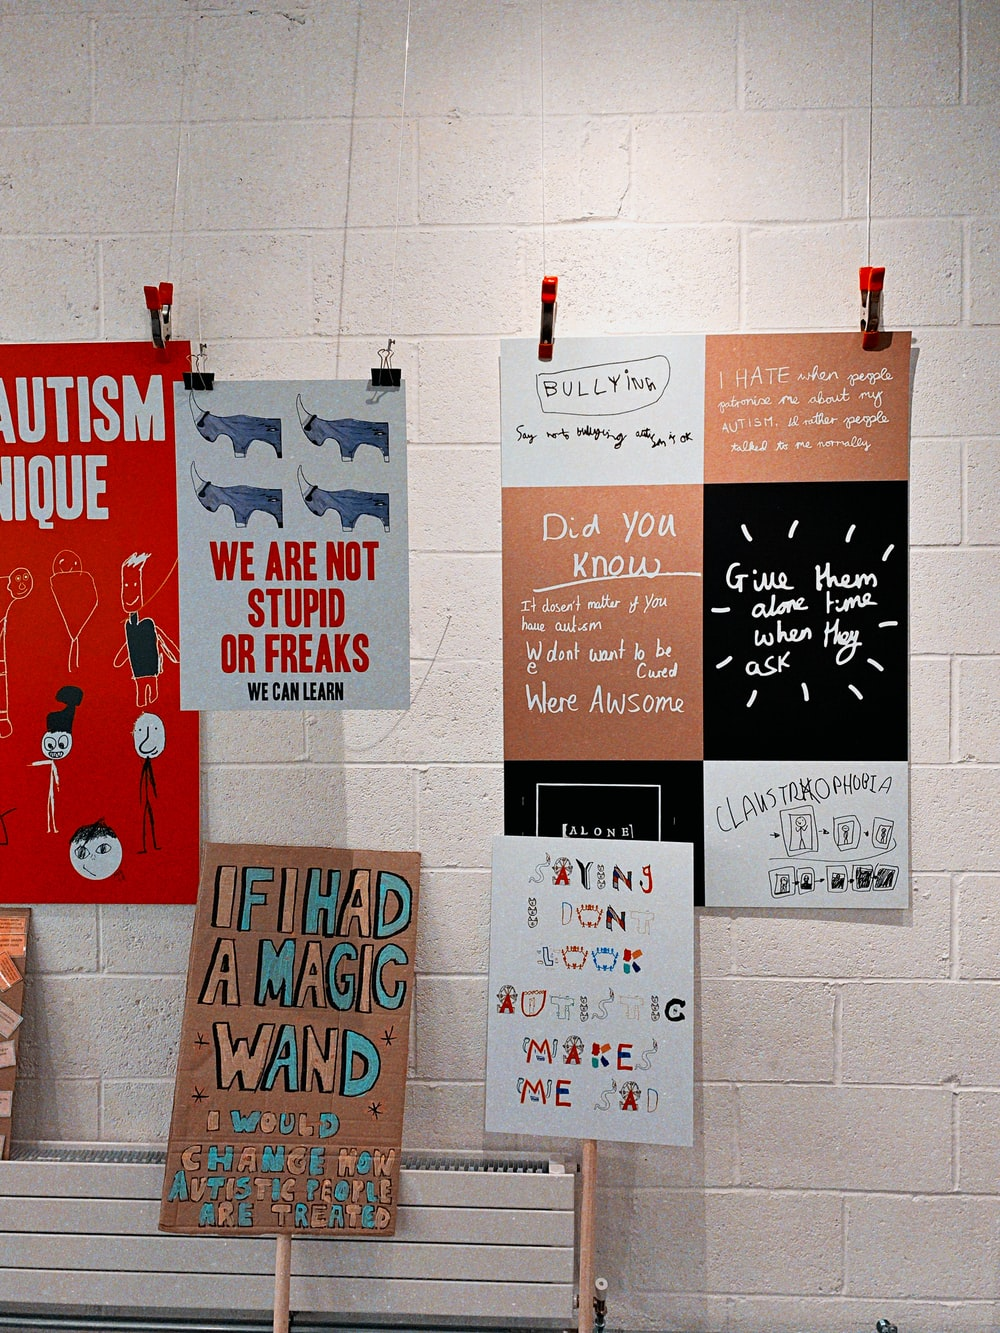 greetings cards hanged by a thread near white brick wall paint